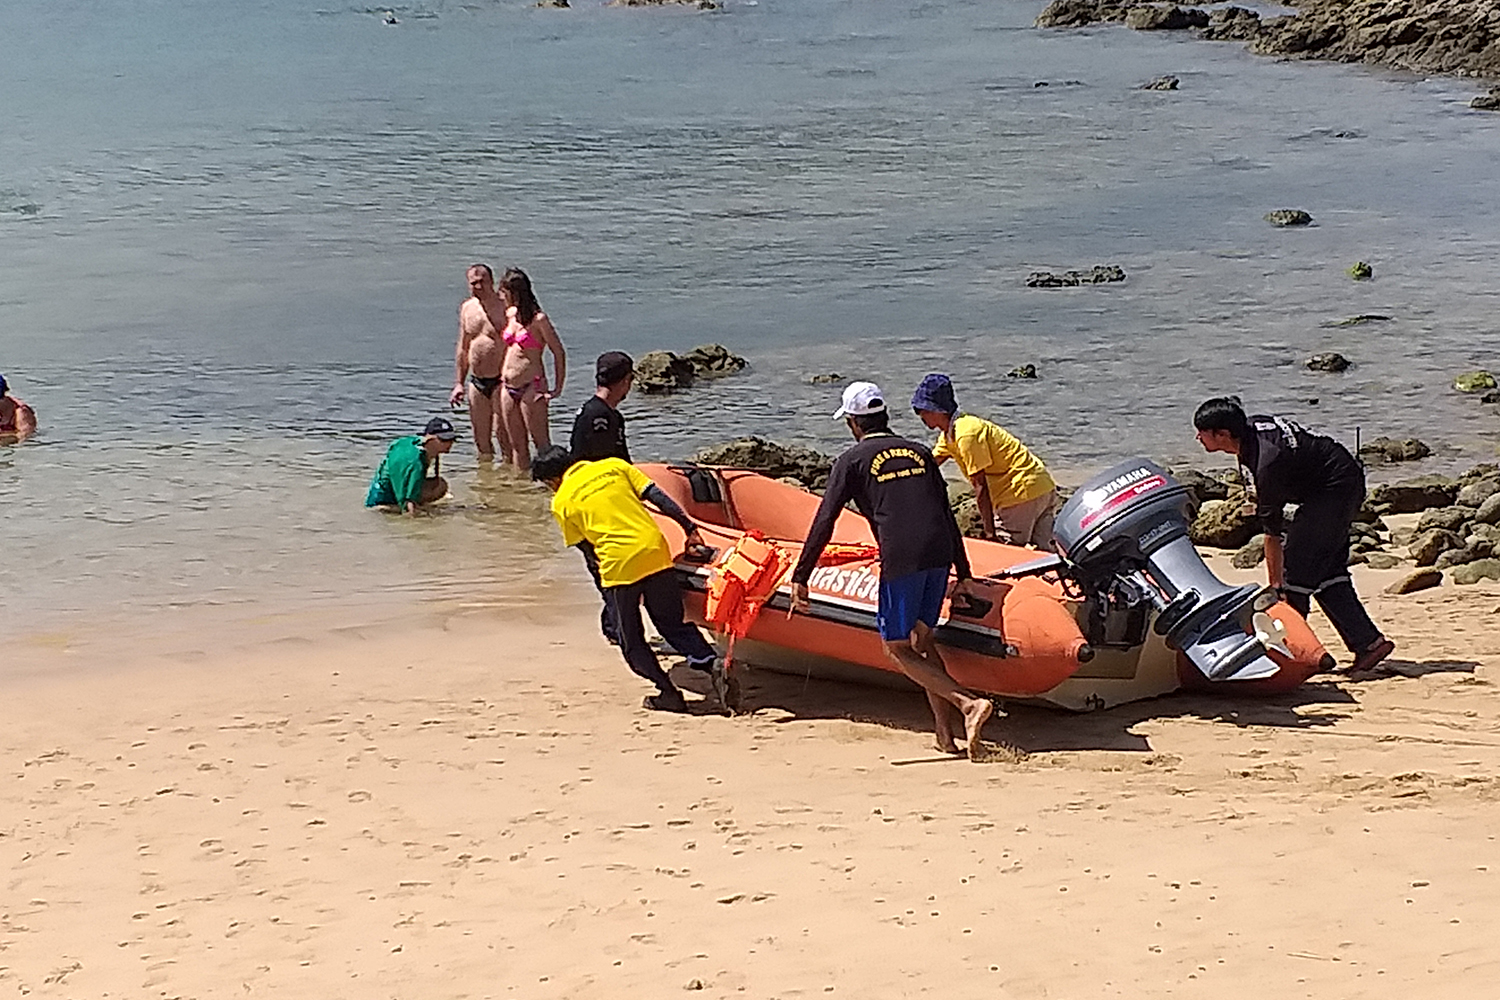 Rescuers go to the Andaman Sea in a rubber boat in Phuket province on Monday to search for a Polish tourist and a Thai woman who went kayaking and have not returned since Saturday. (Photo by Achadtaya Chuenniran)